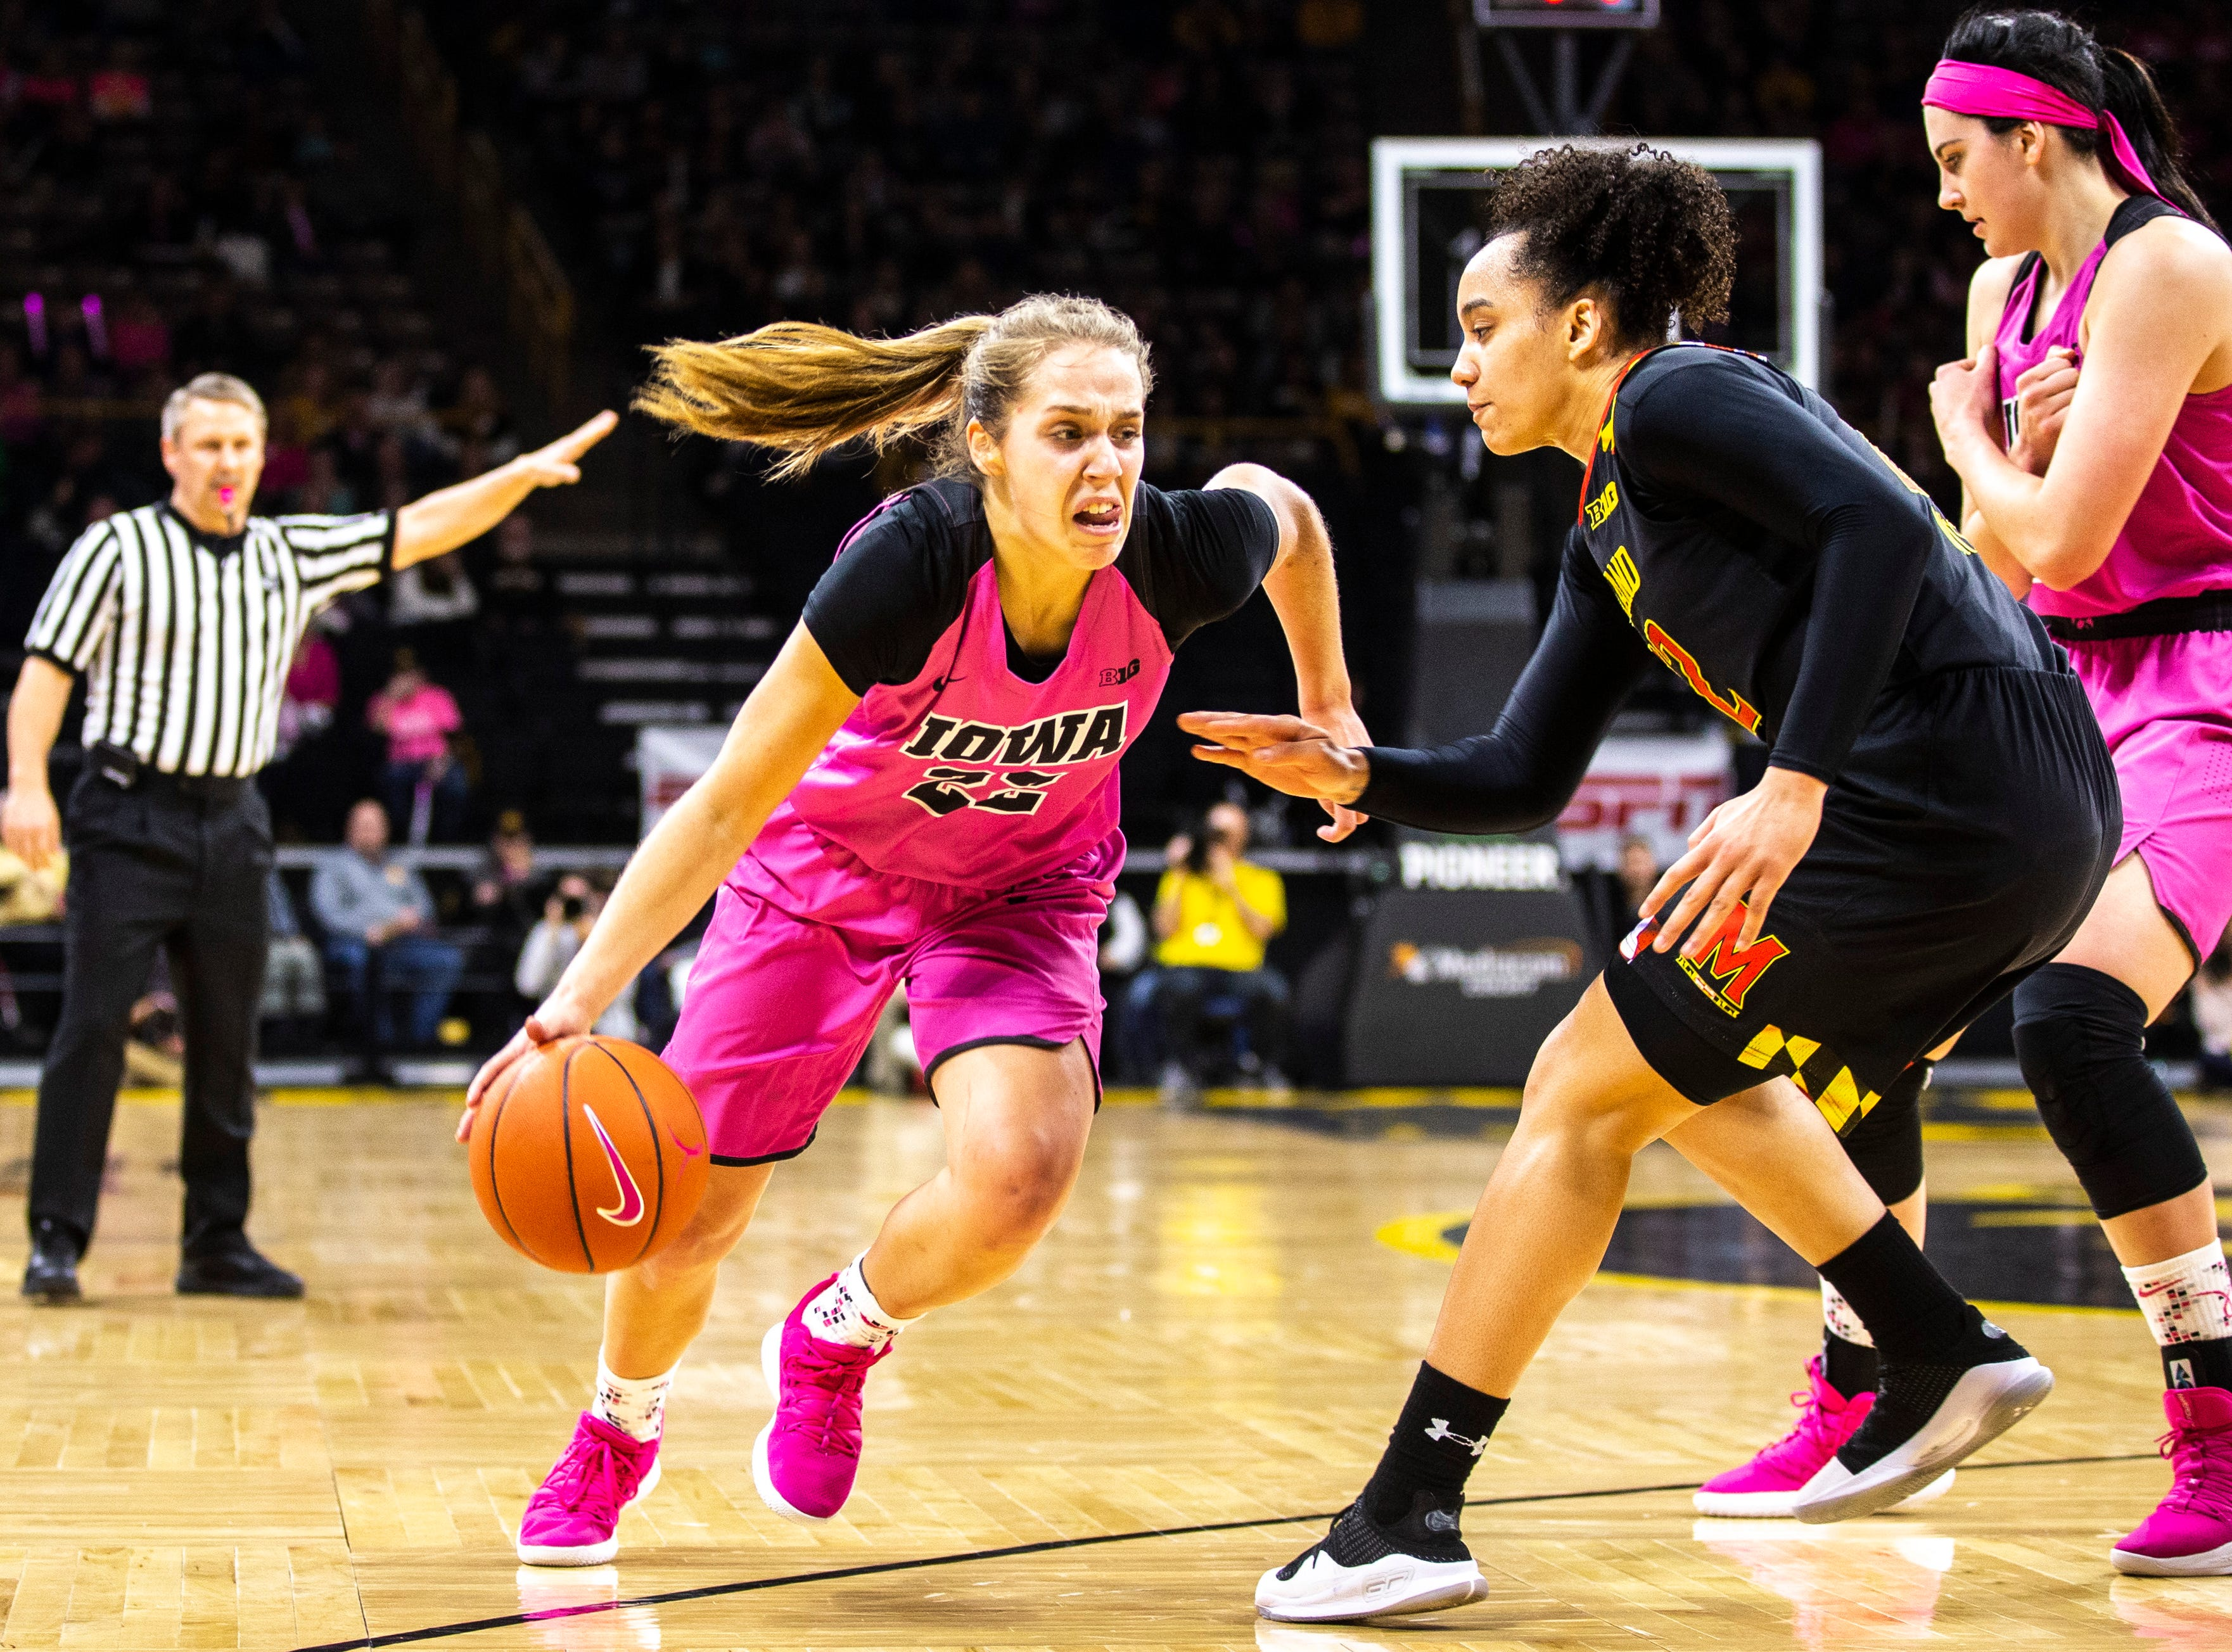 Iowa guard Kathleen Doyle (22) drives to the basket while Maryland guard Blair Watson, right, defends during a NCAA Big Ten Conference women's basketball game on Sunday, Feb. 17, 2019 at Carver-Hawkeye Arena in Iowa City, Iowa.